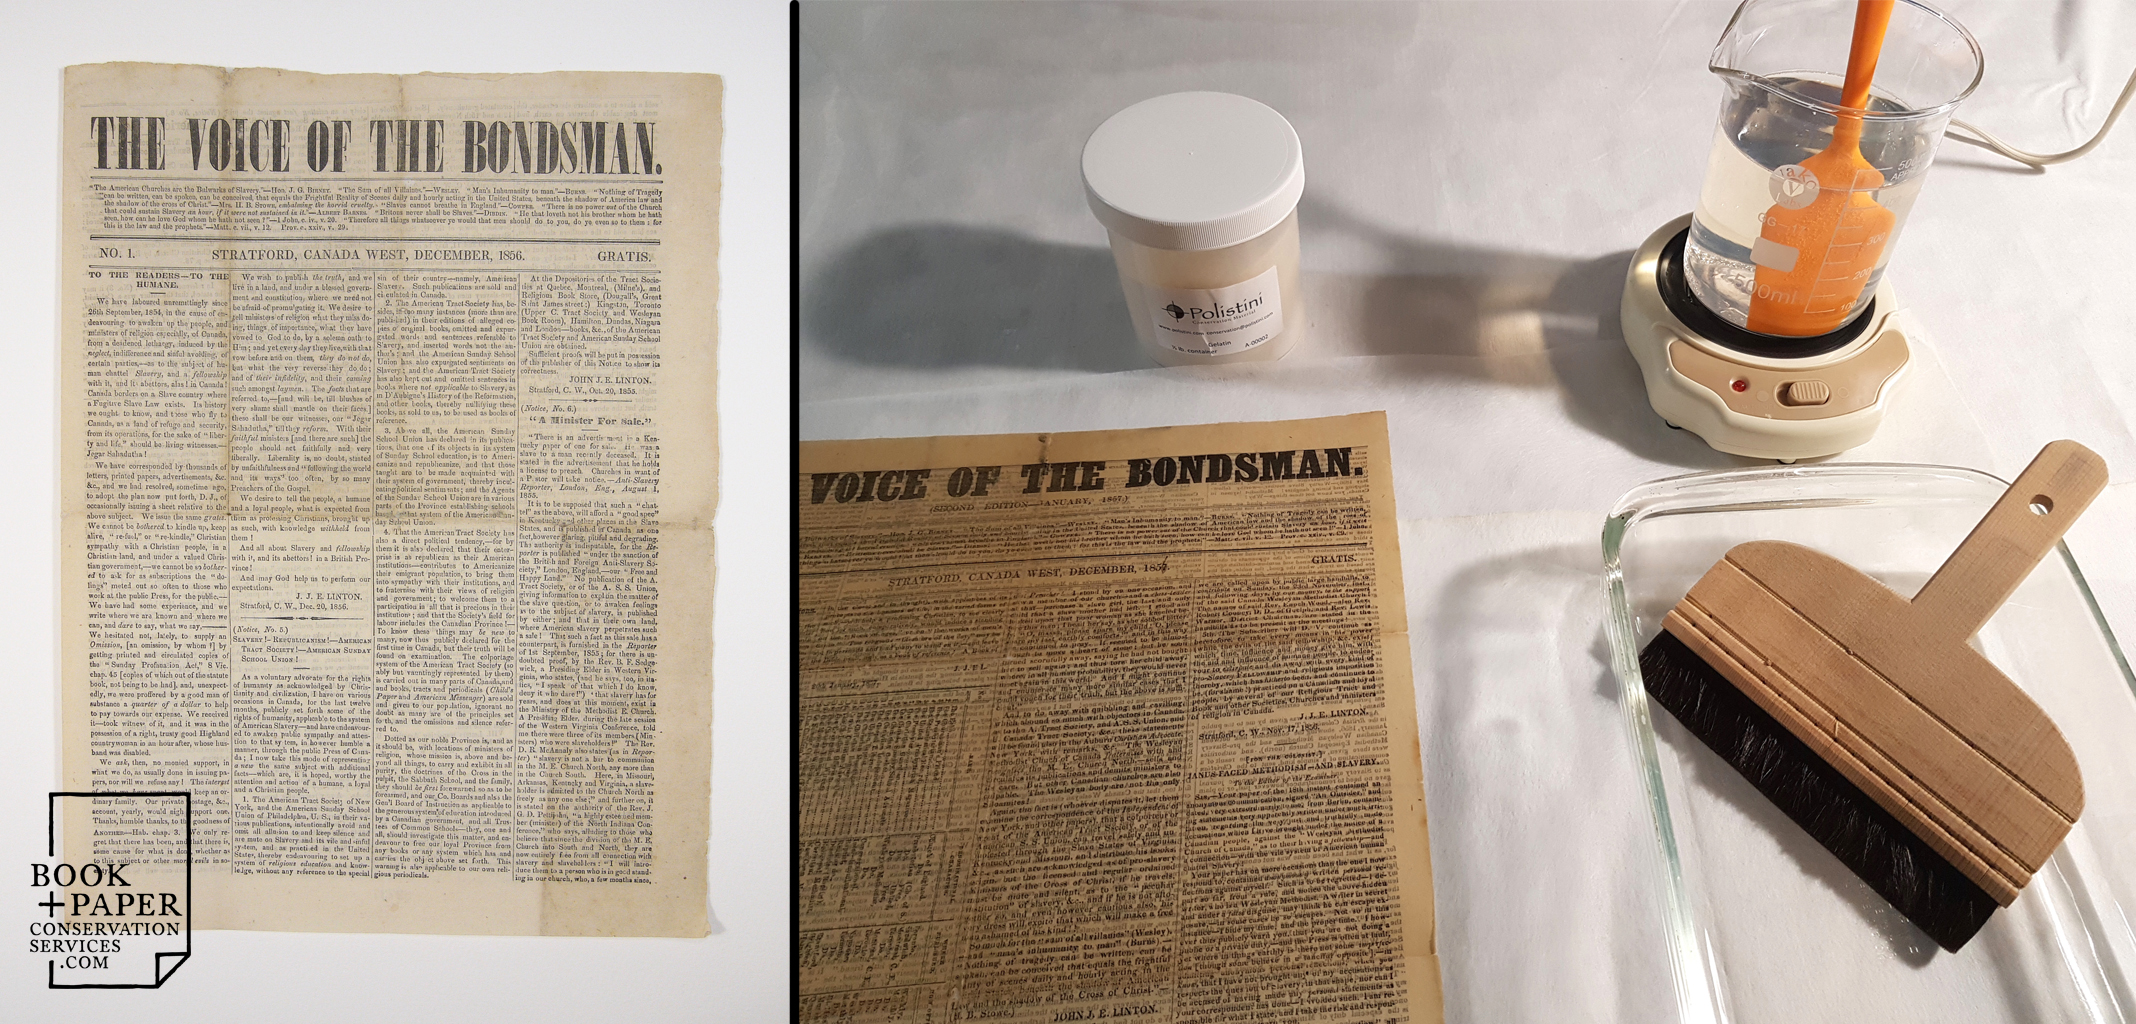 Two issues of a rare early Canadian Abolitionist newspaper,  The Voice of the Bondsman,  published in 1856, recently received conservation treatment at our studio.